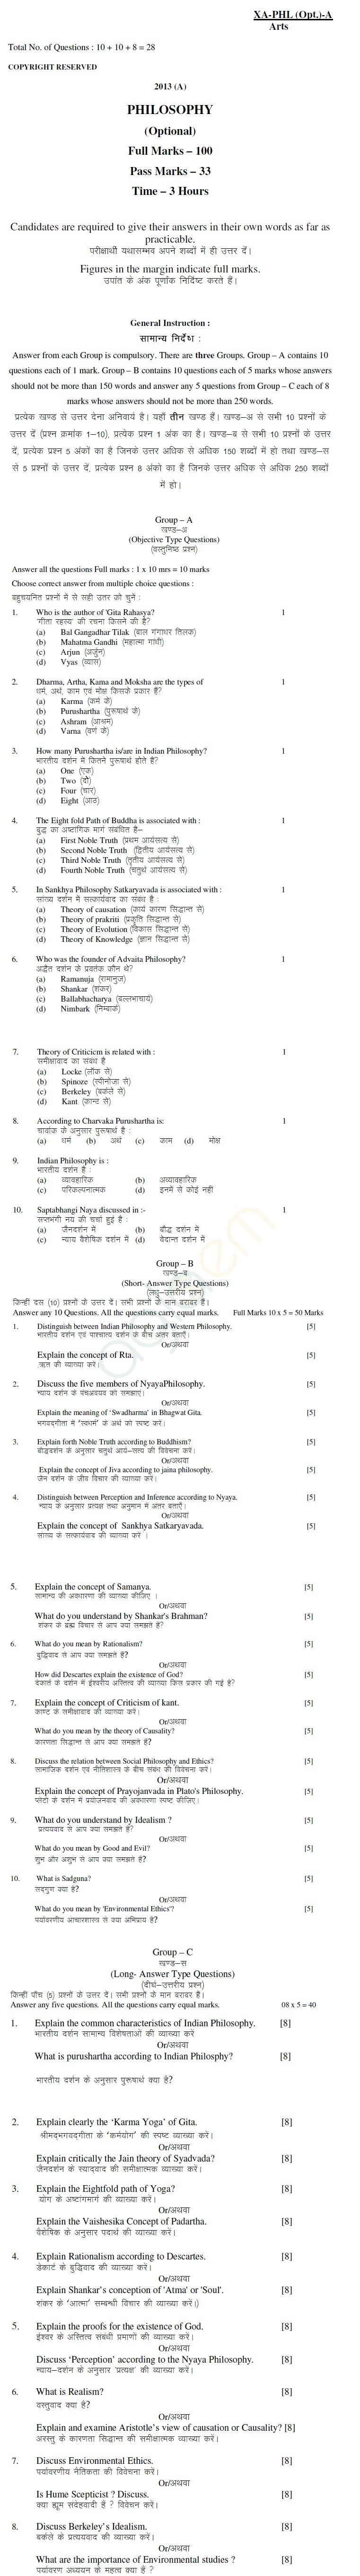 Jharkhand Board Class XII Sample Papers – PHILOSOPHY